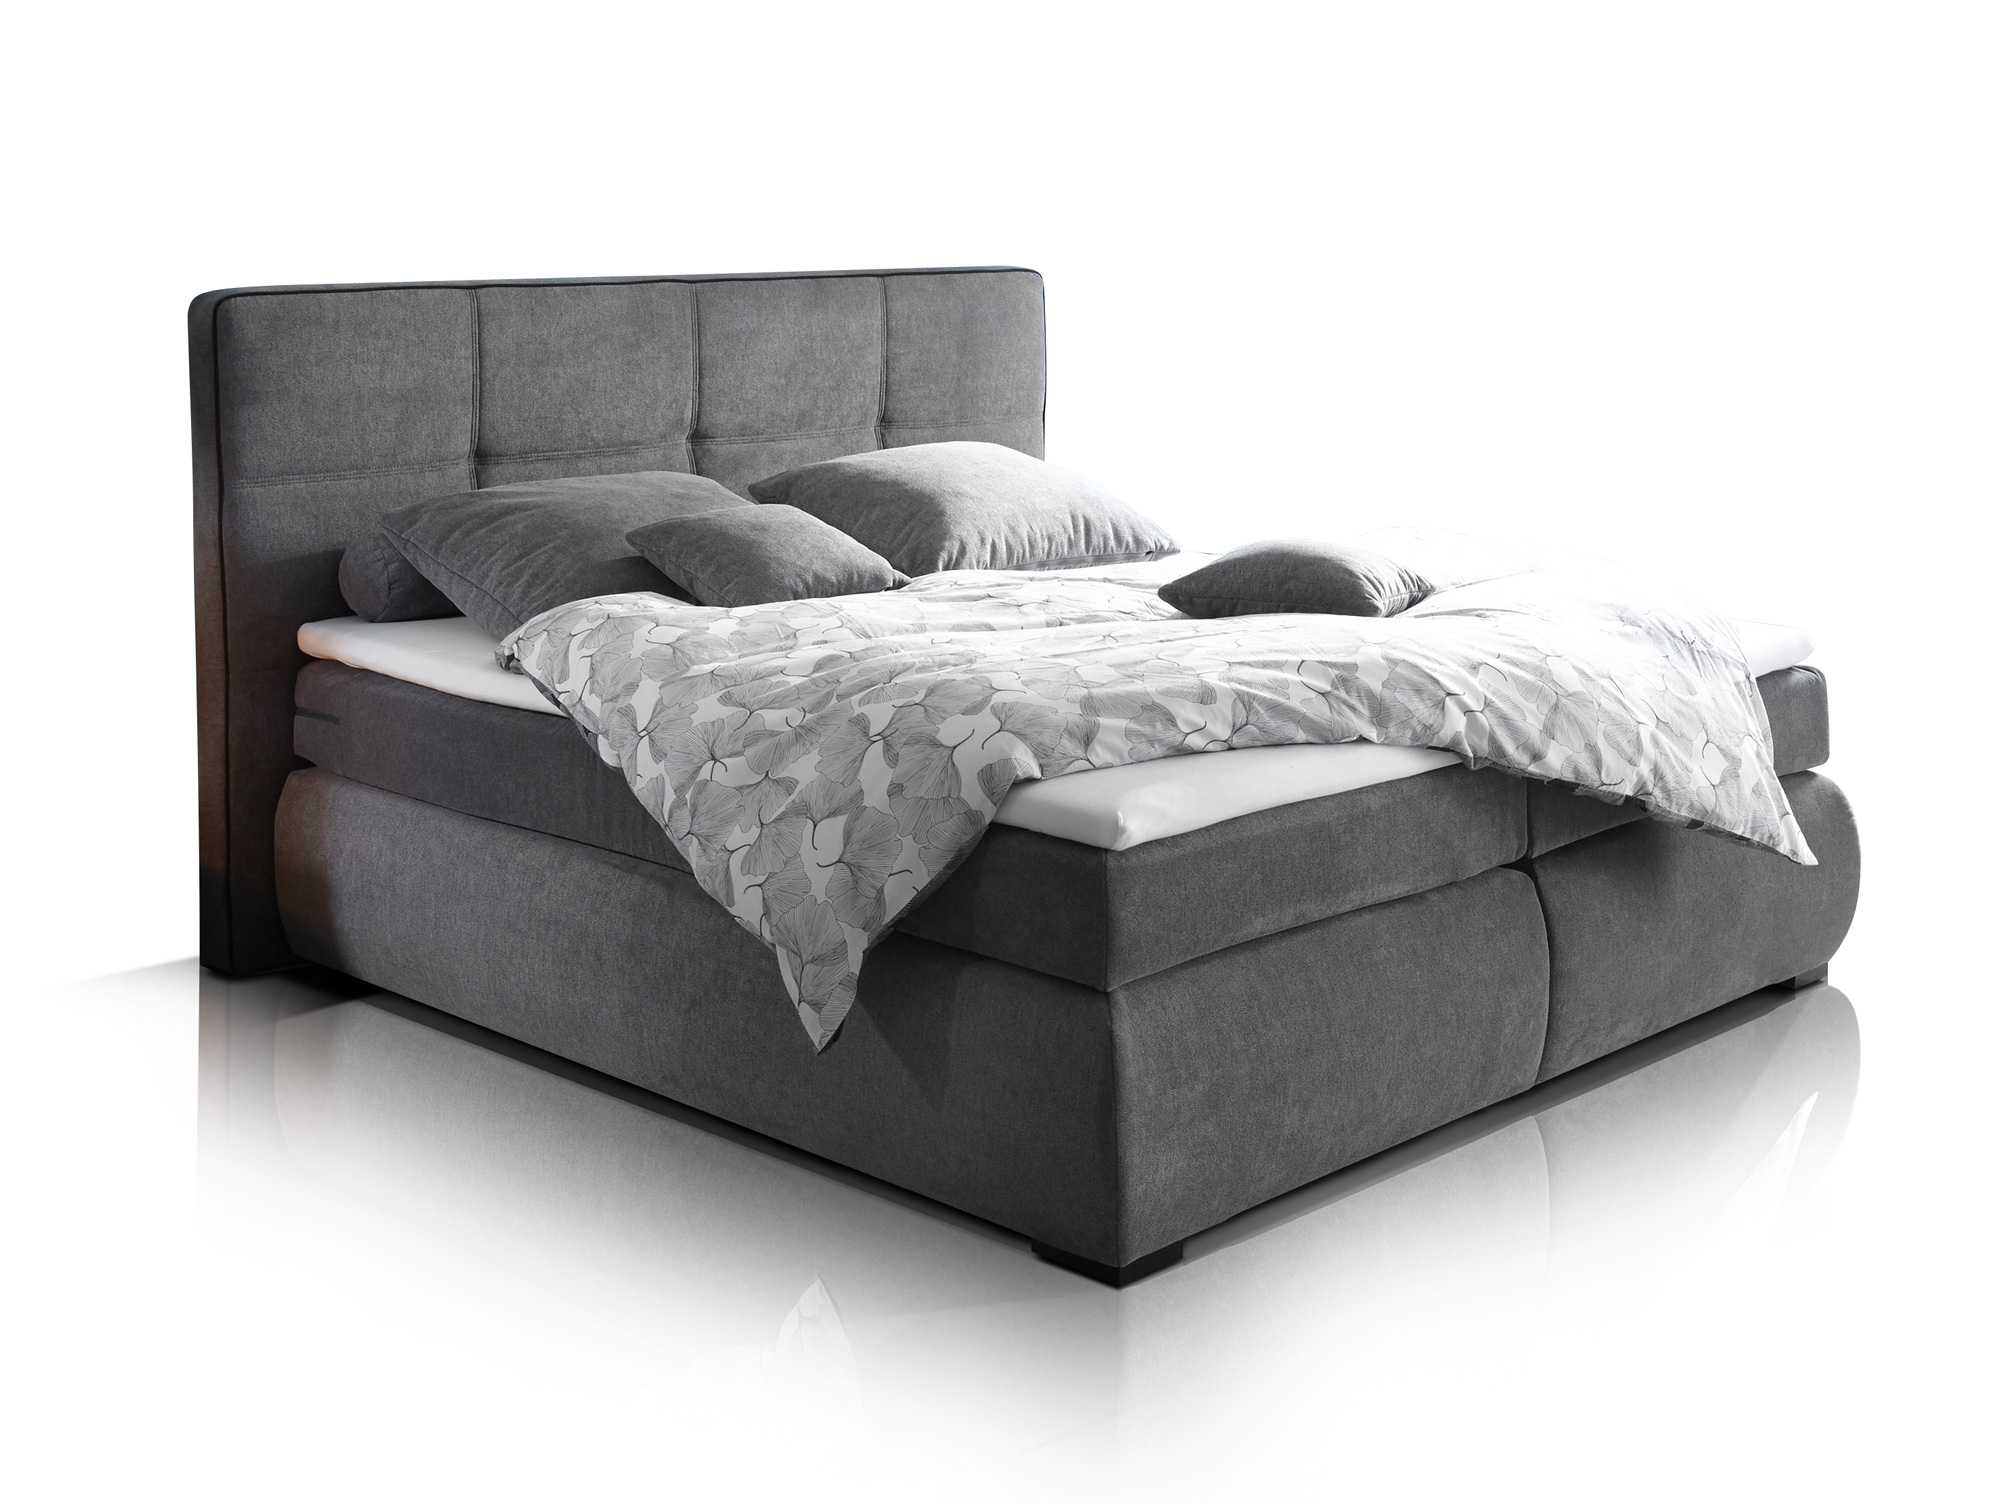 emmy boxspringbett doppelbett 180x200 cm dunkelgrau. Black Bedroom Furniture Sets. Home Design Ideas